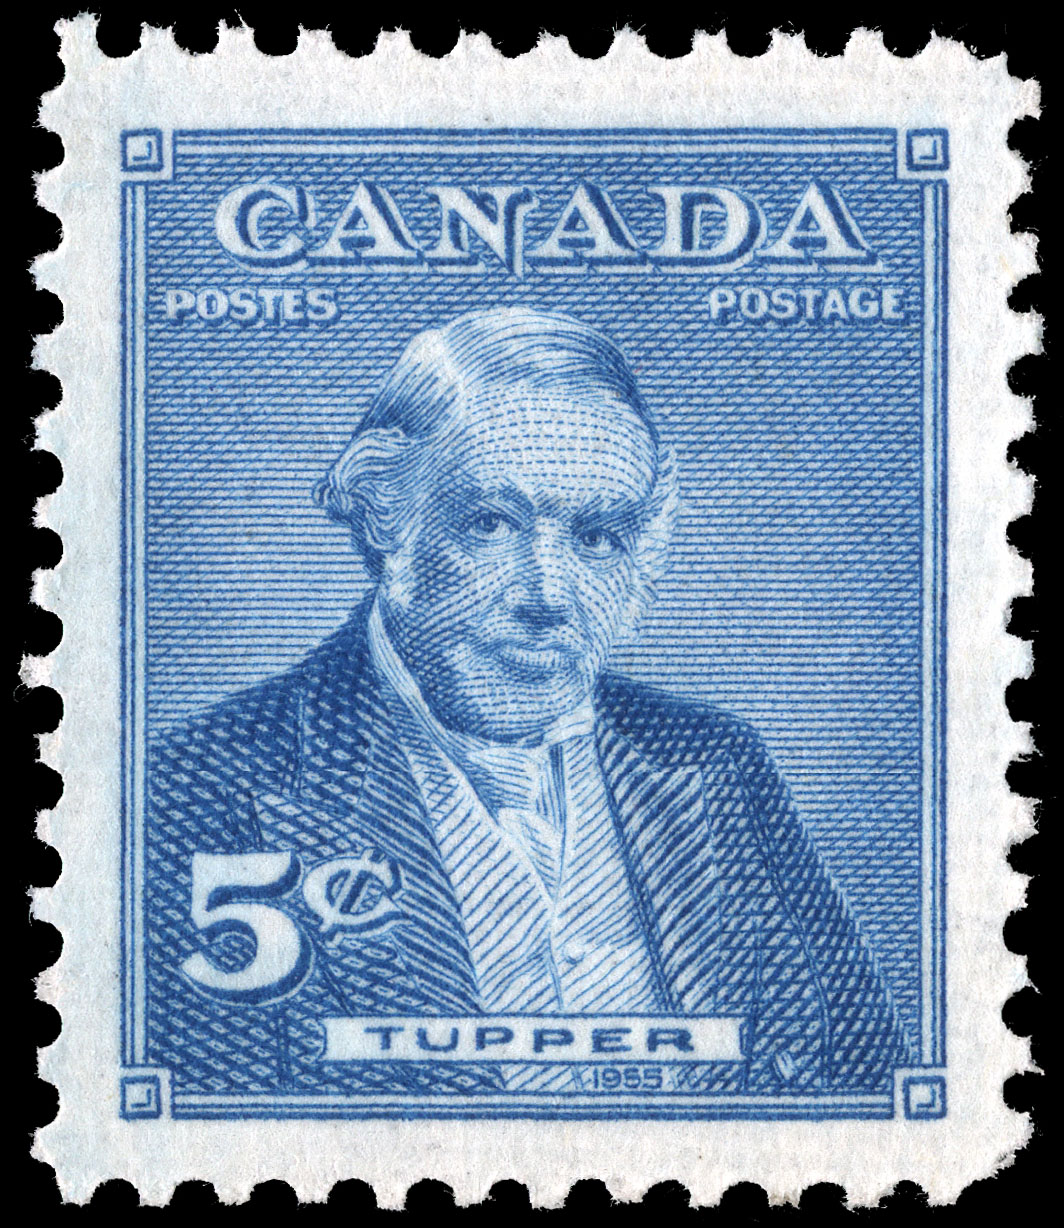 Tupper Canada Postage Stamp | Prime Ministers